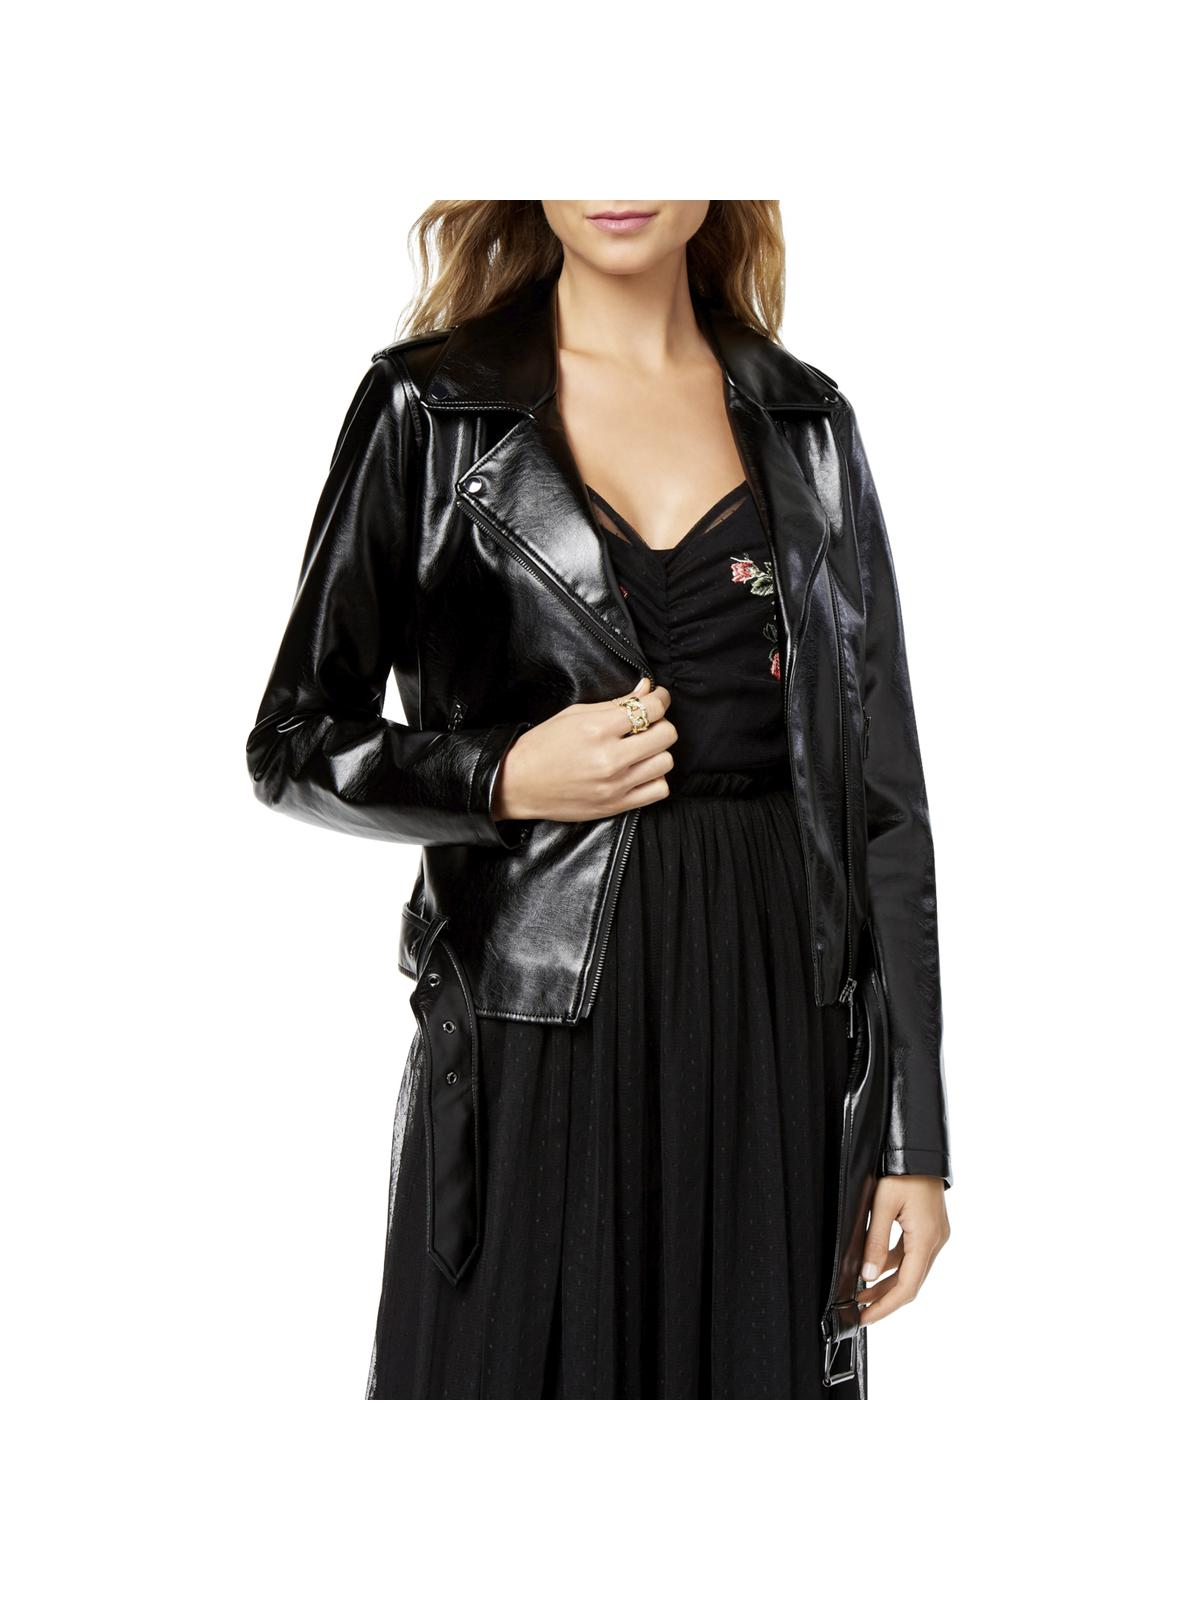 Guess Womens Faux Leather Metallic Motorcycle Jacket